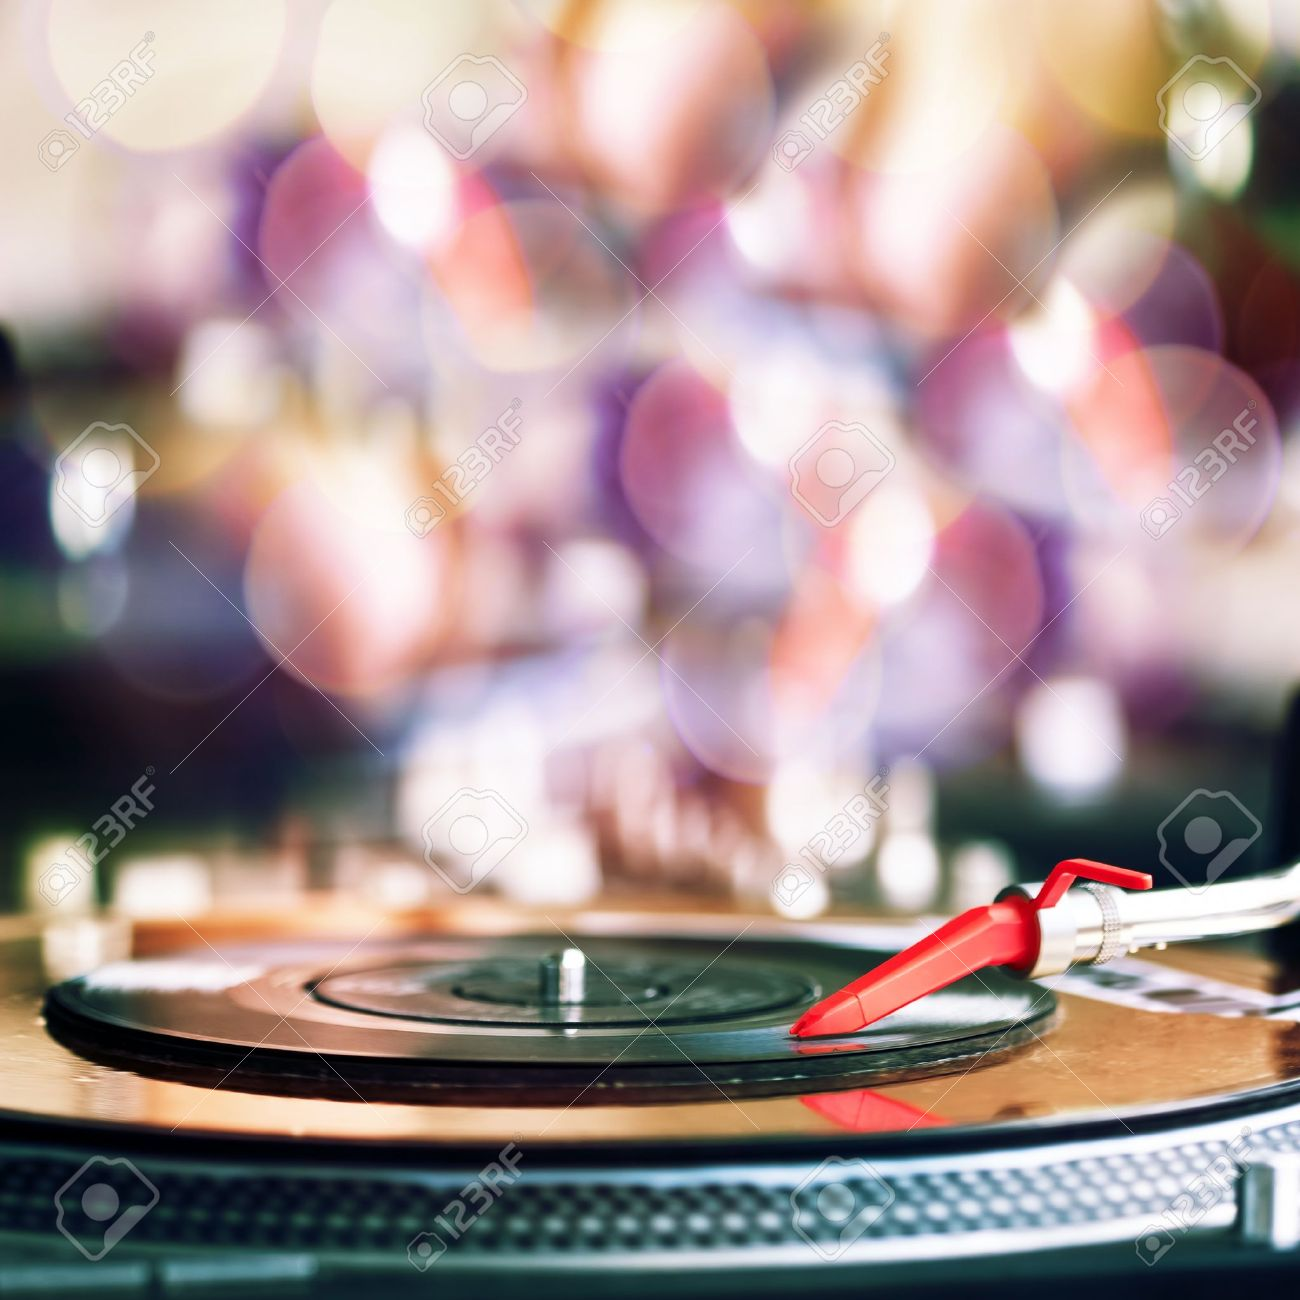 Vinyl record spinning on DJ player Stock Photo - 10611774